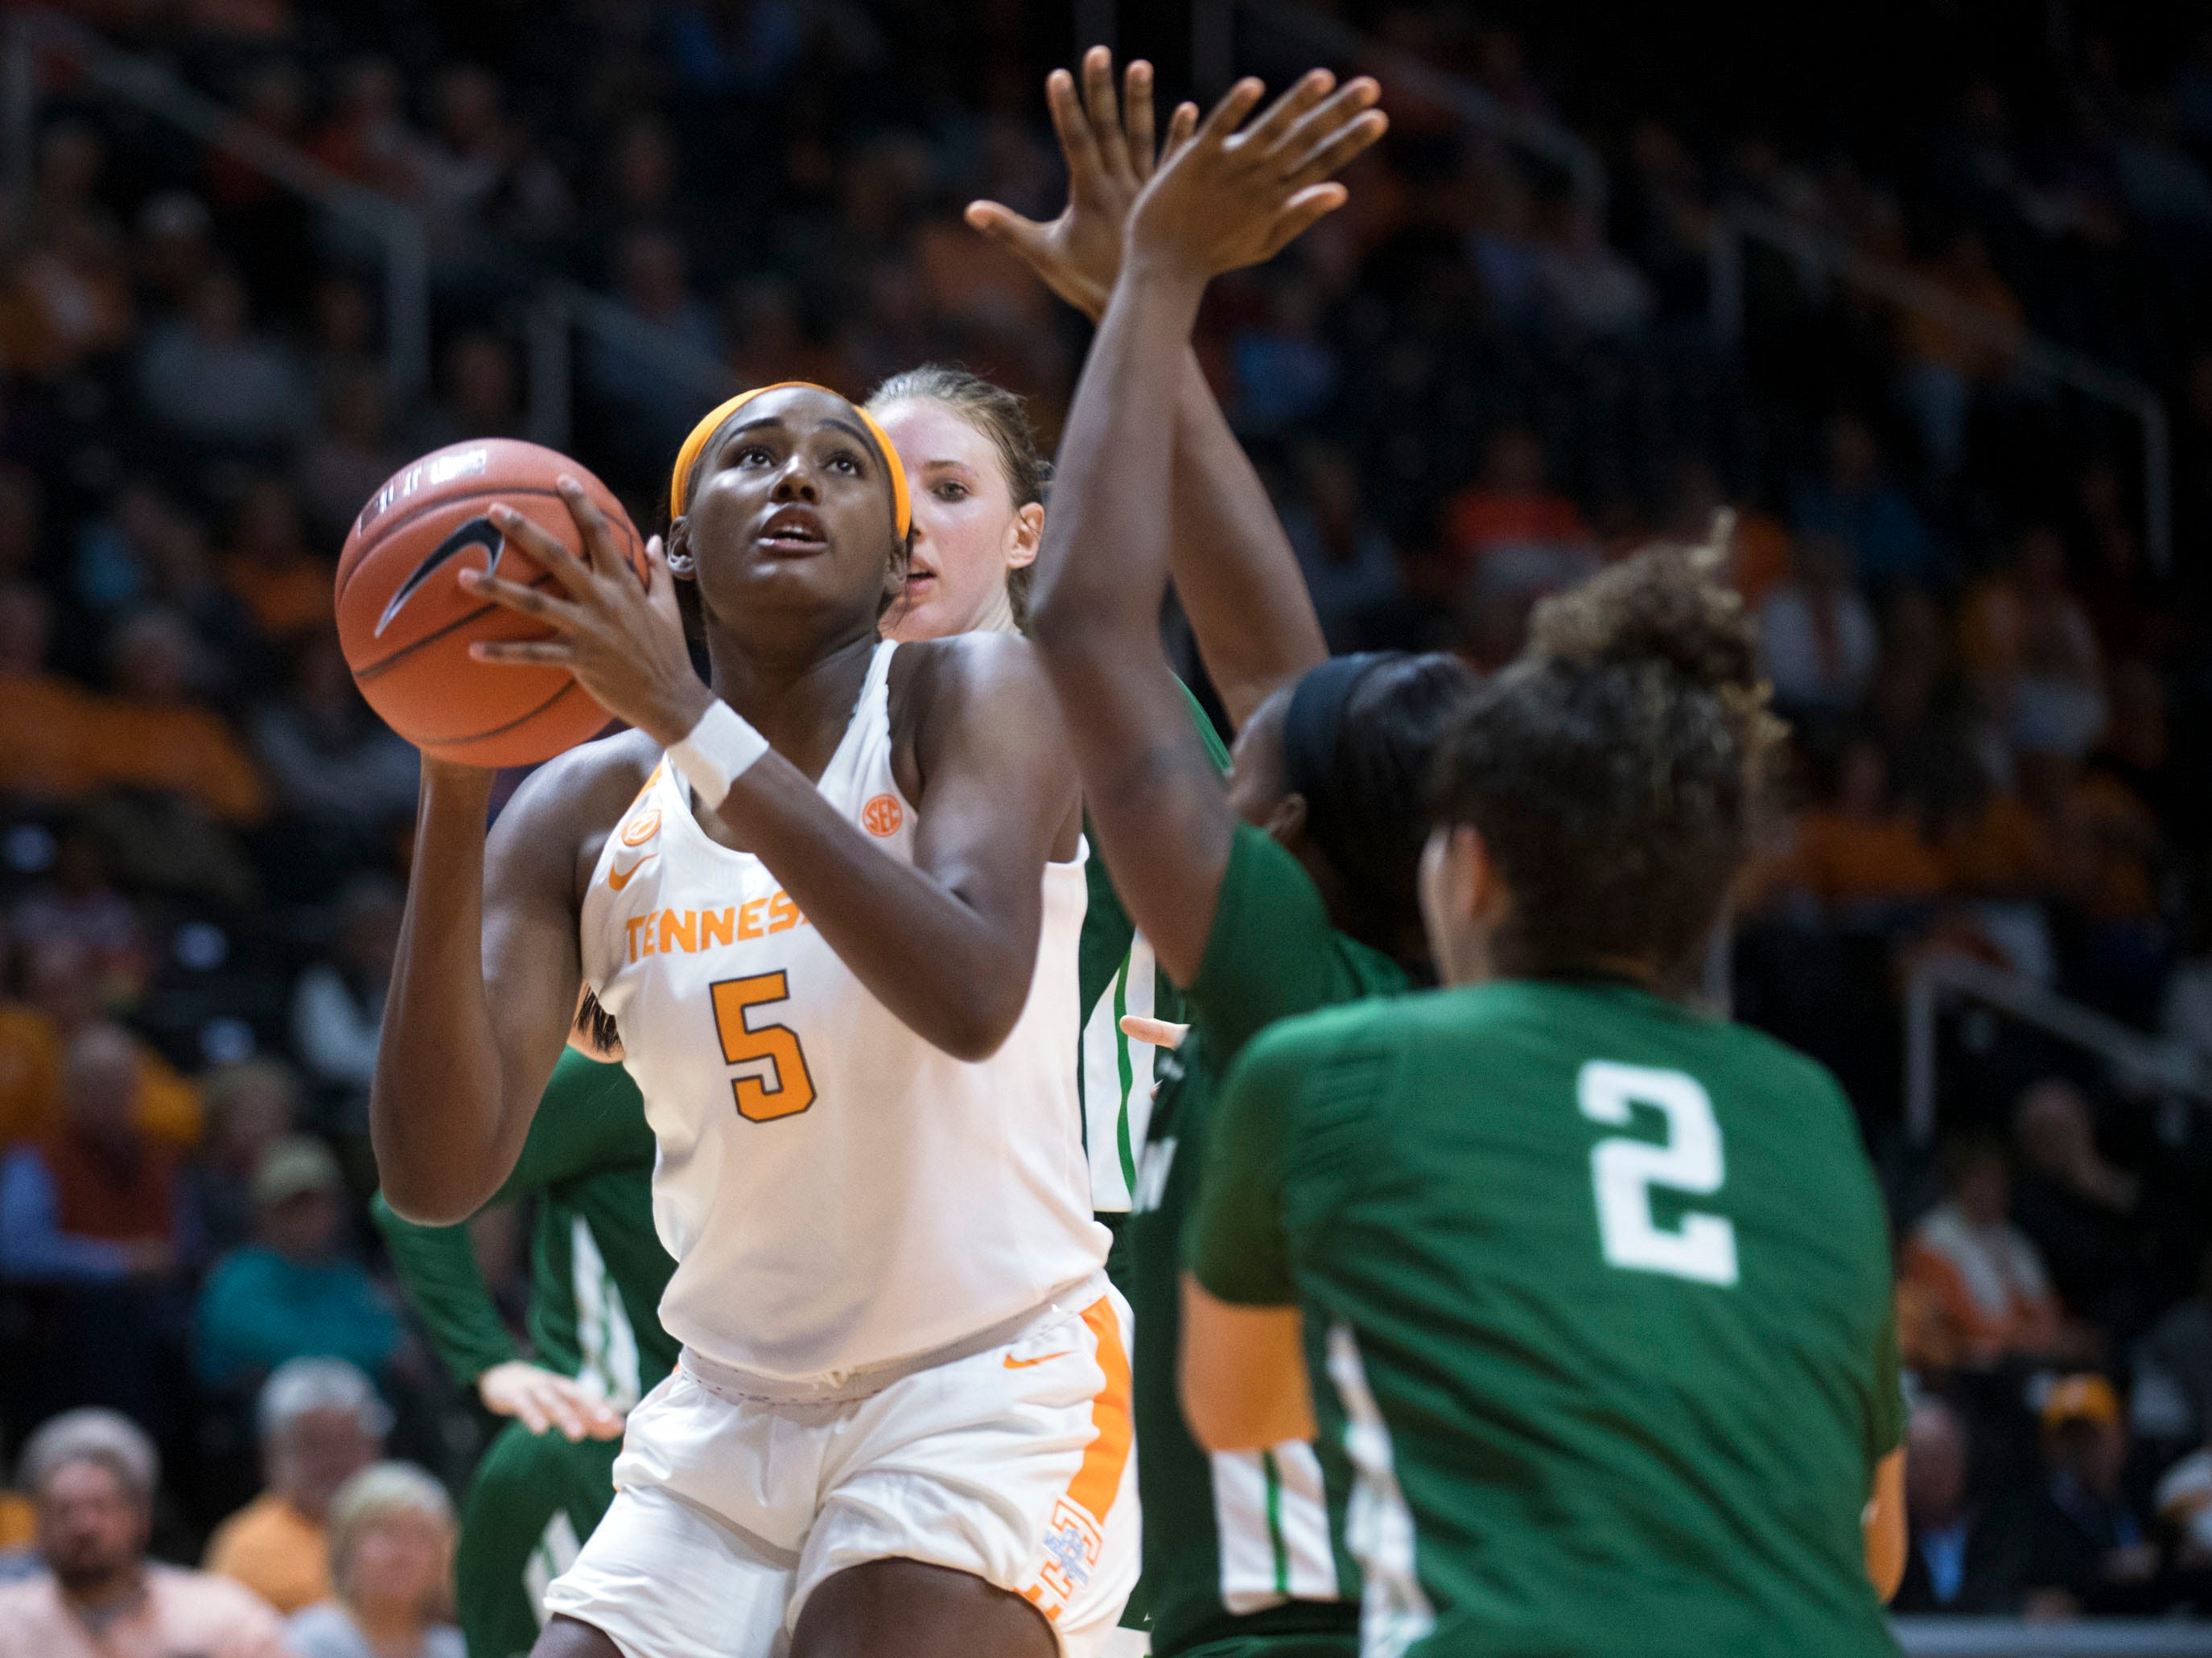 Tennessee's Kamera Harris (5) looks to the basket diring the game against Stetson at Thompson-Boling Arena on Wednesday, December 5, 2018.